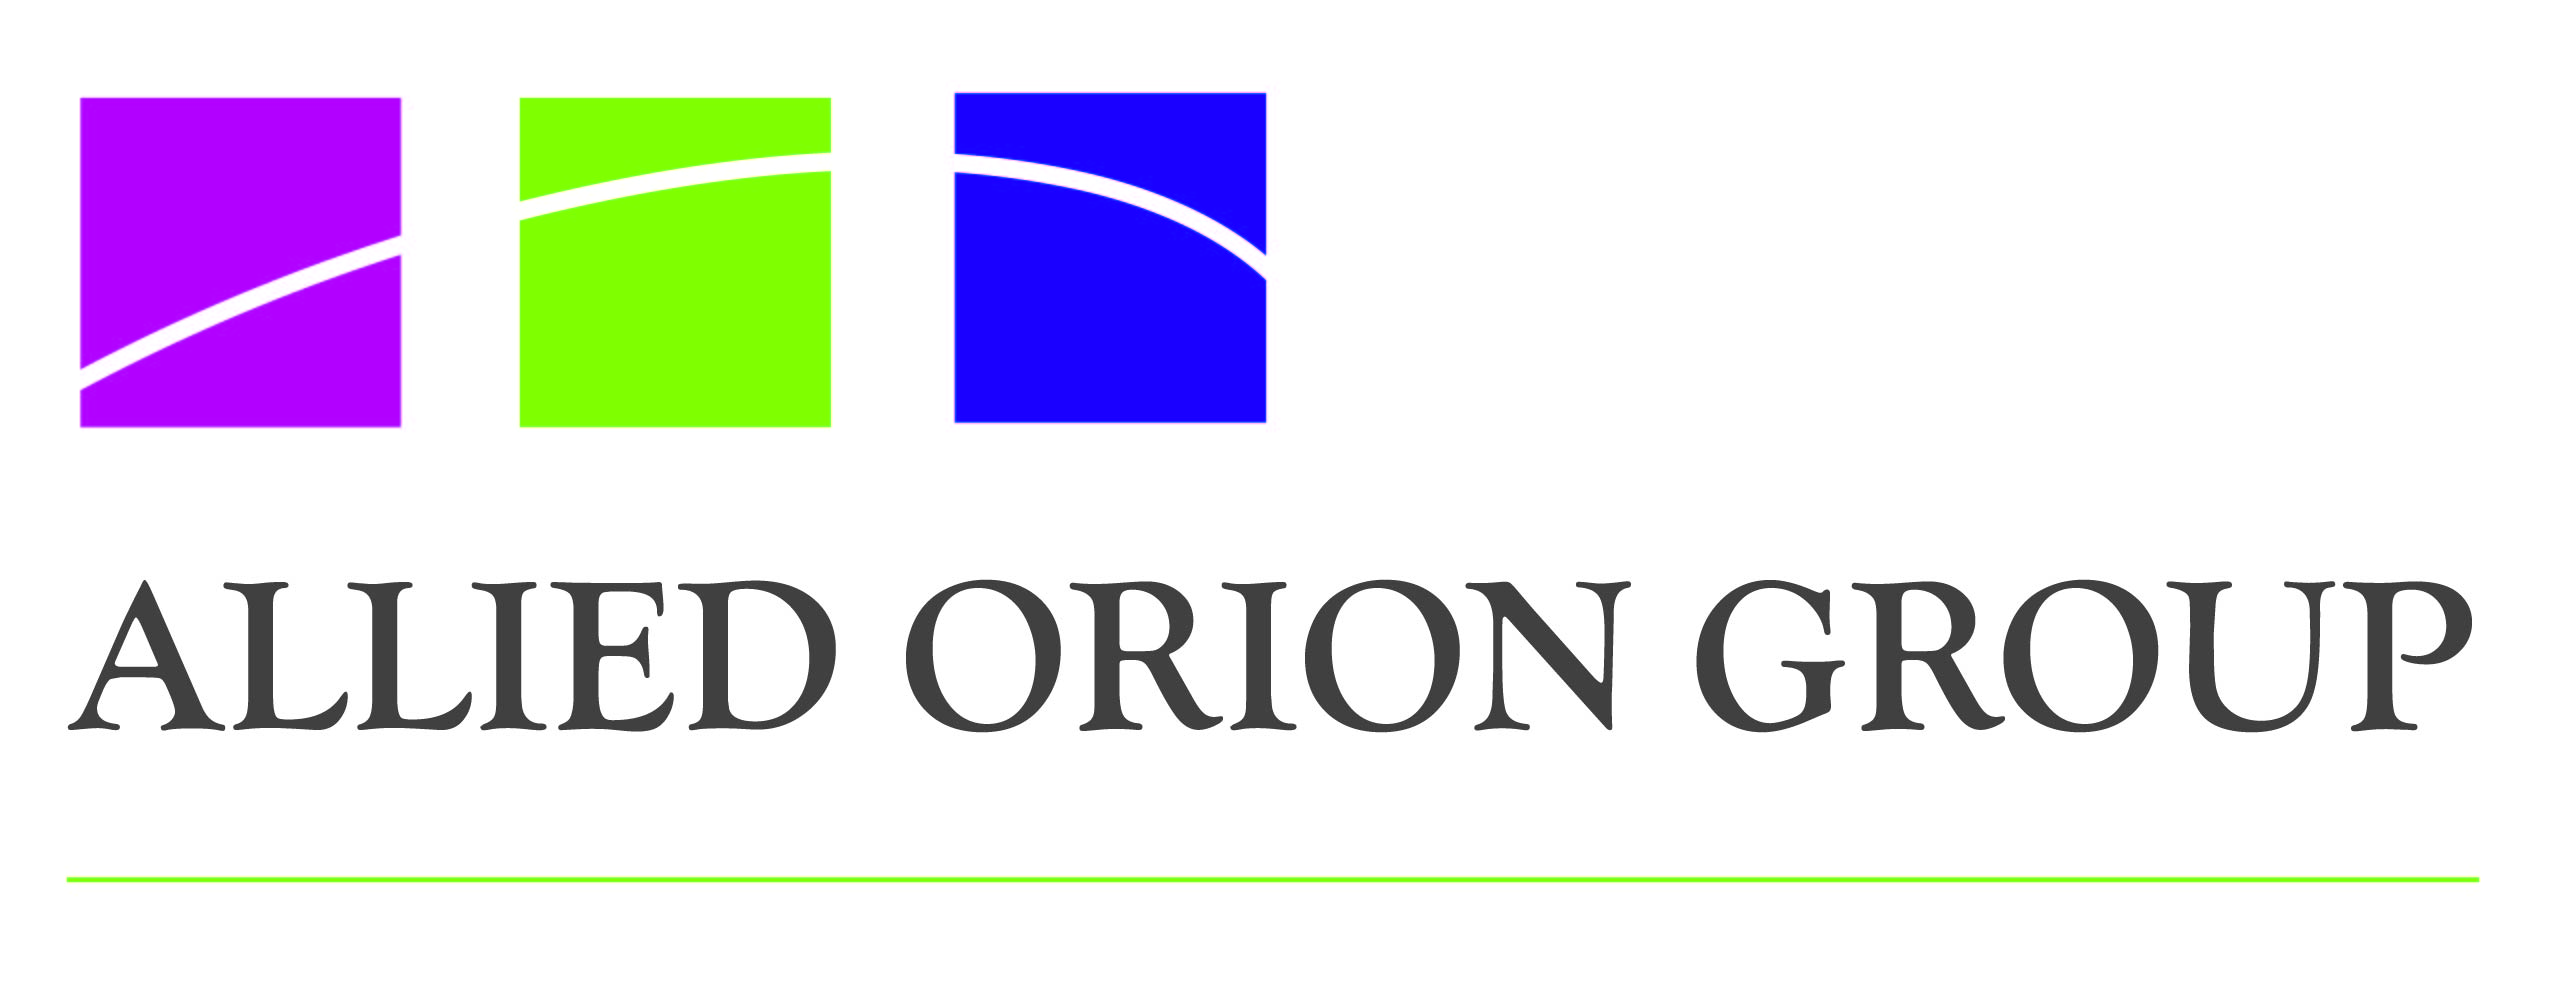 computer support specialist jobs now hiring in houston tx allied orion group logo